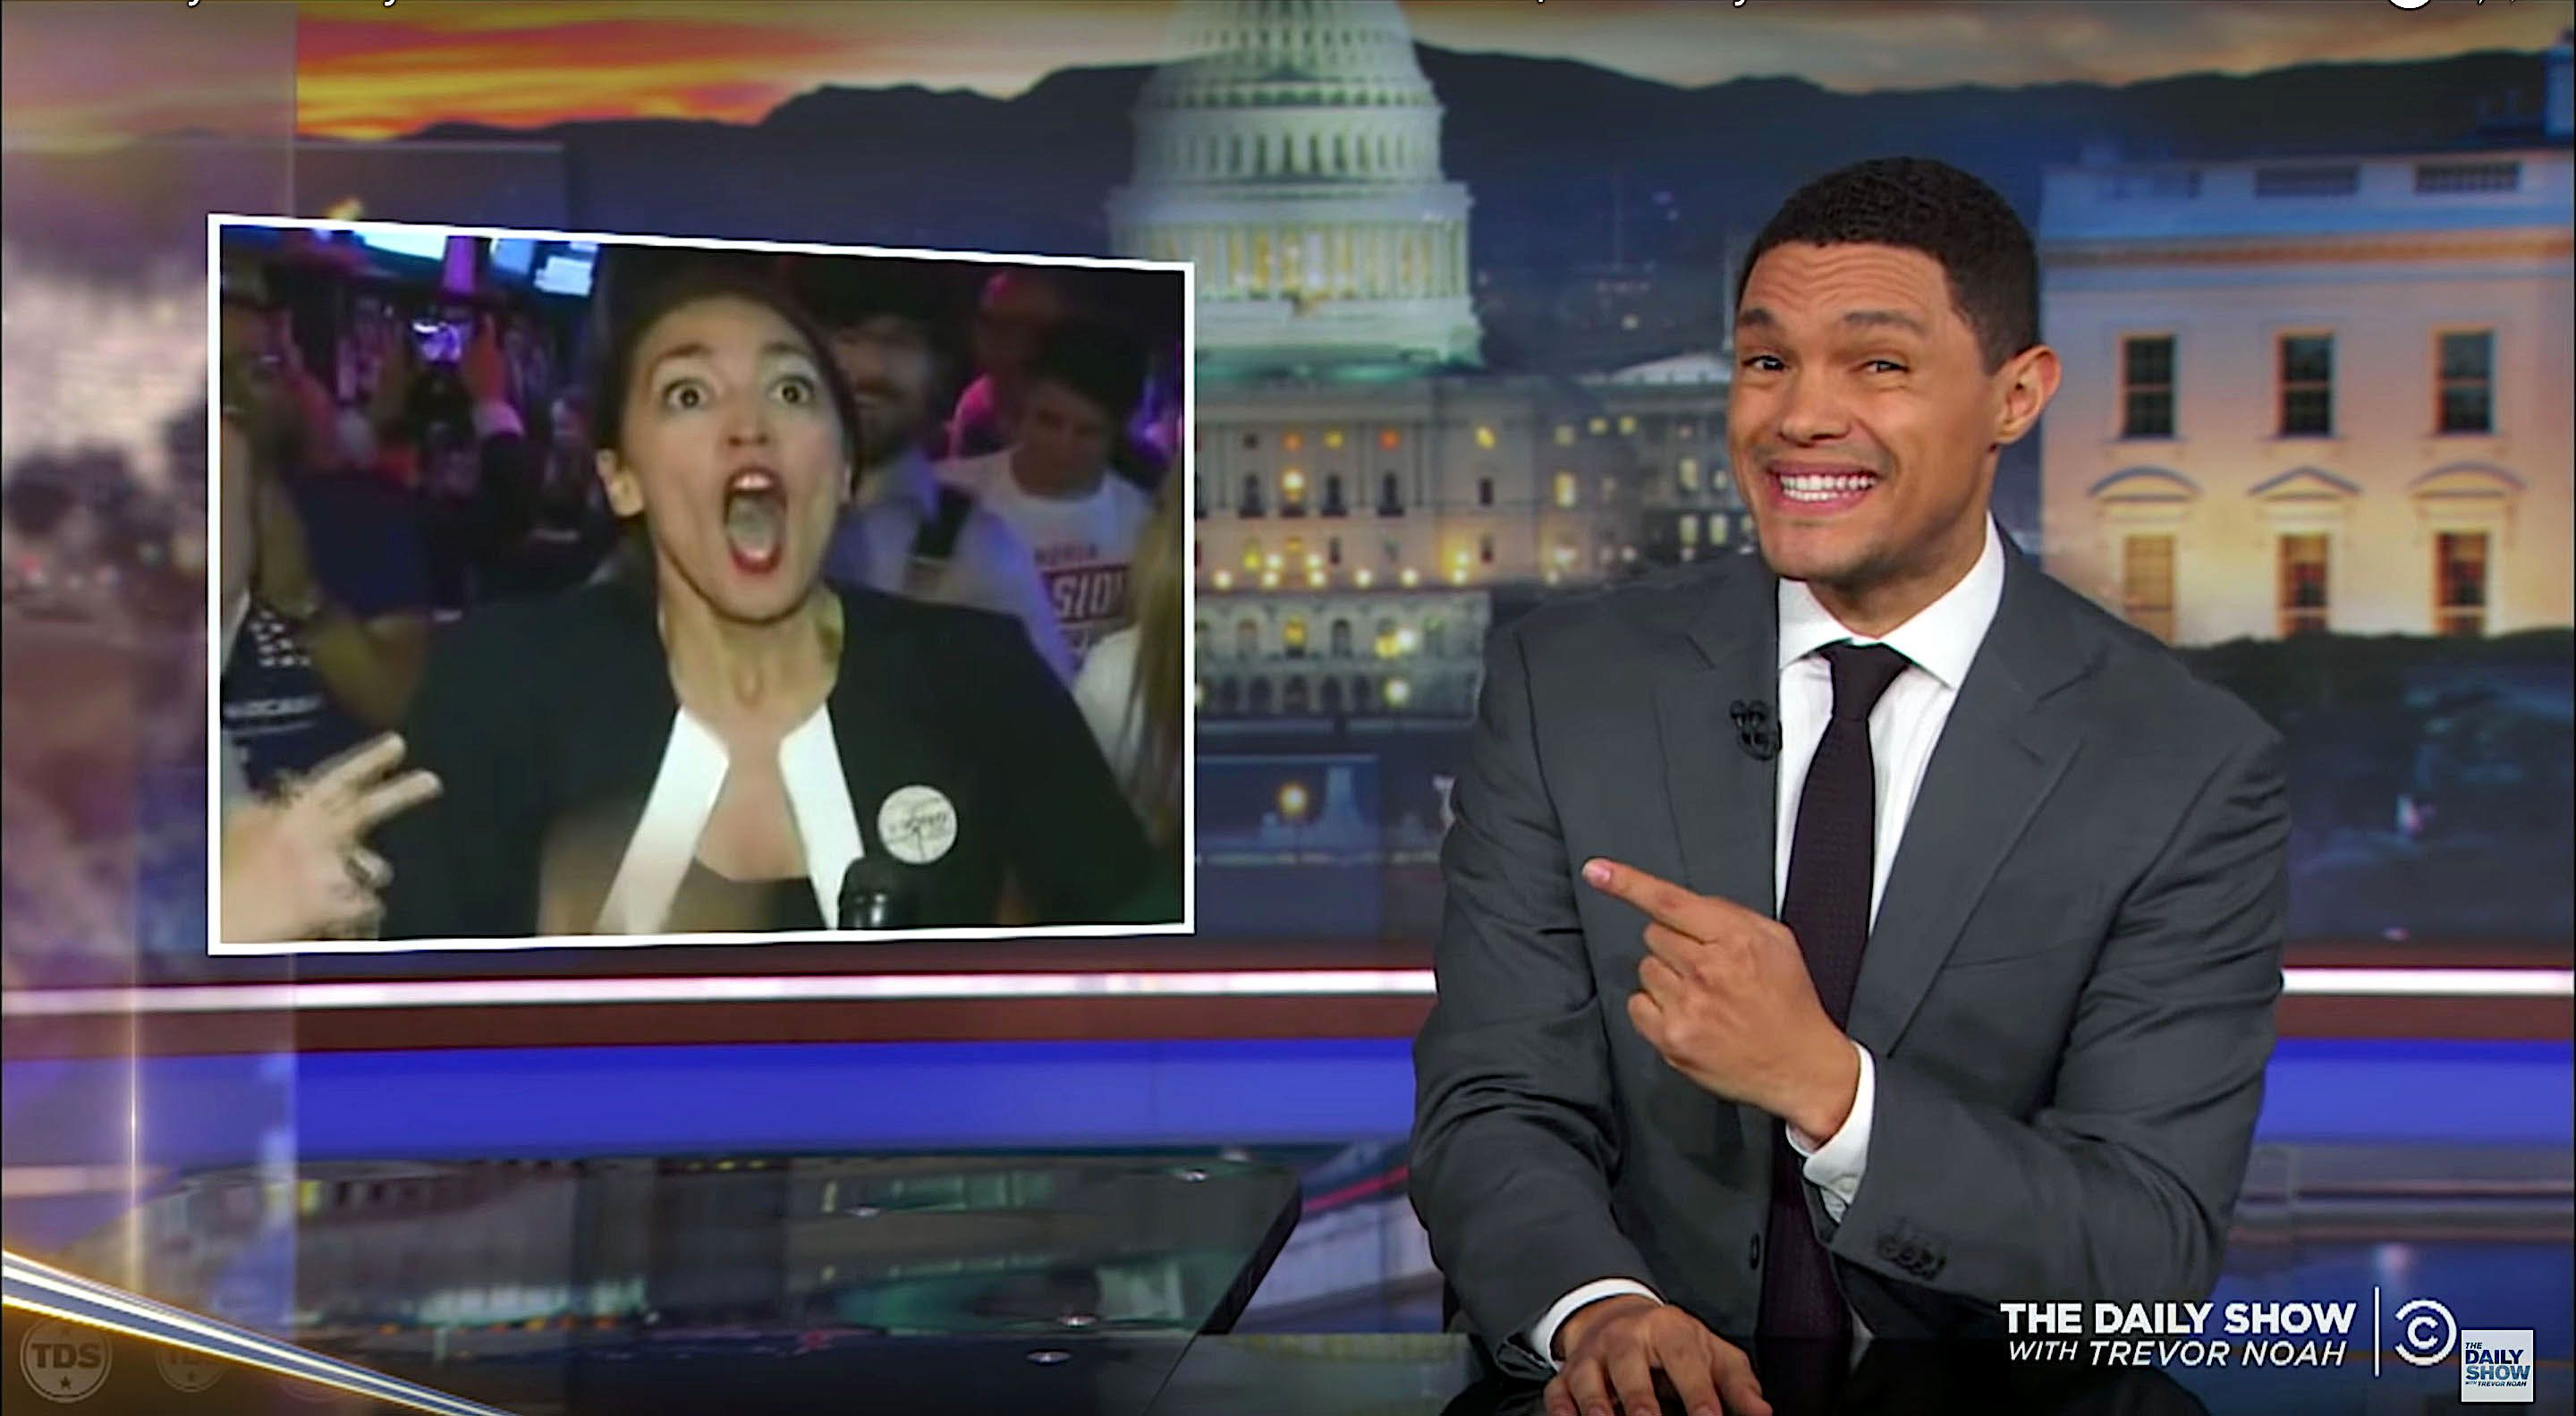 Trevor Noah of The Daily Show reminds viewers of what a happy face looks like